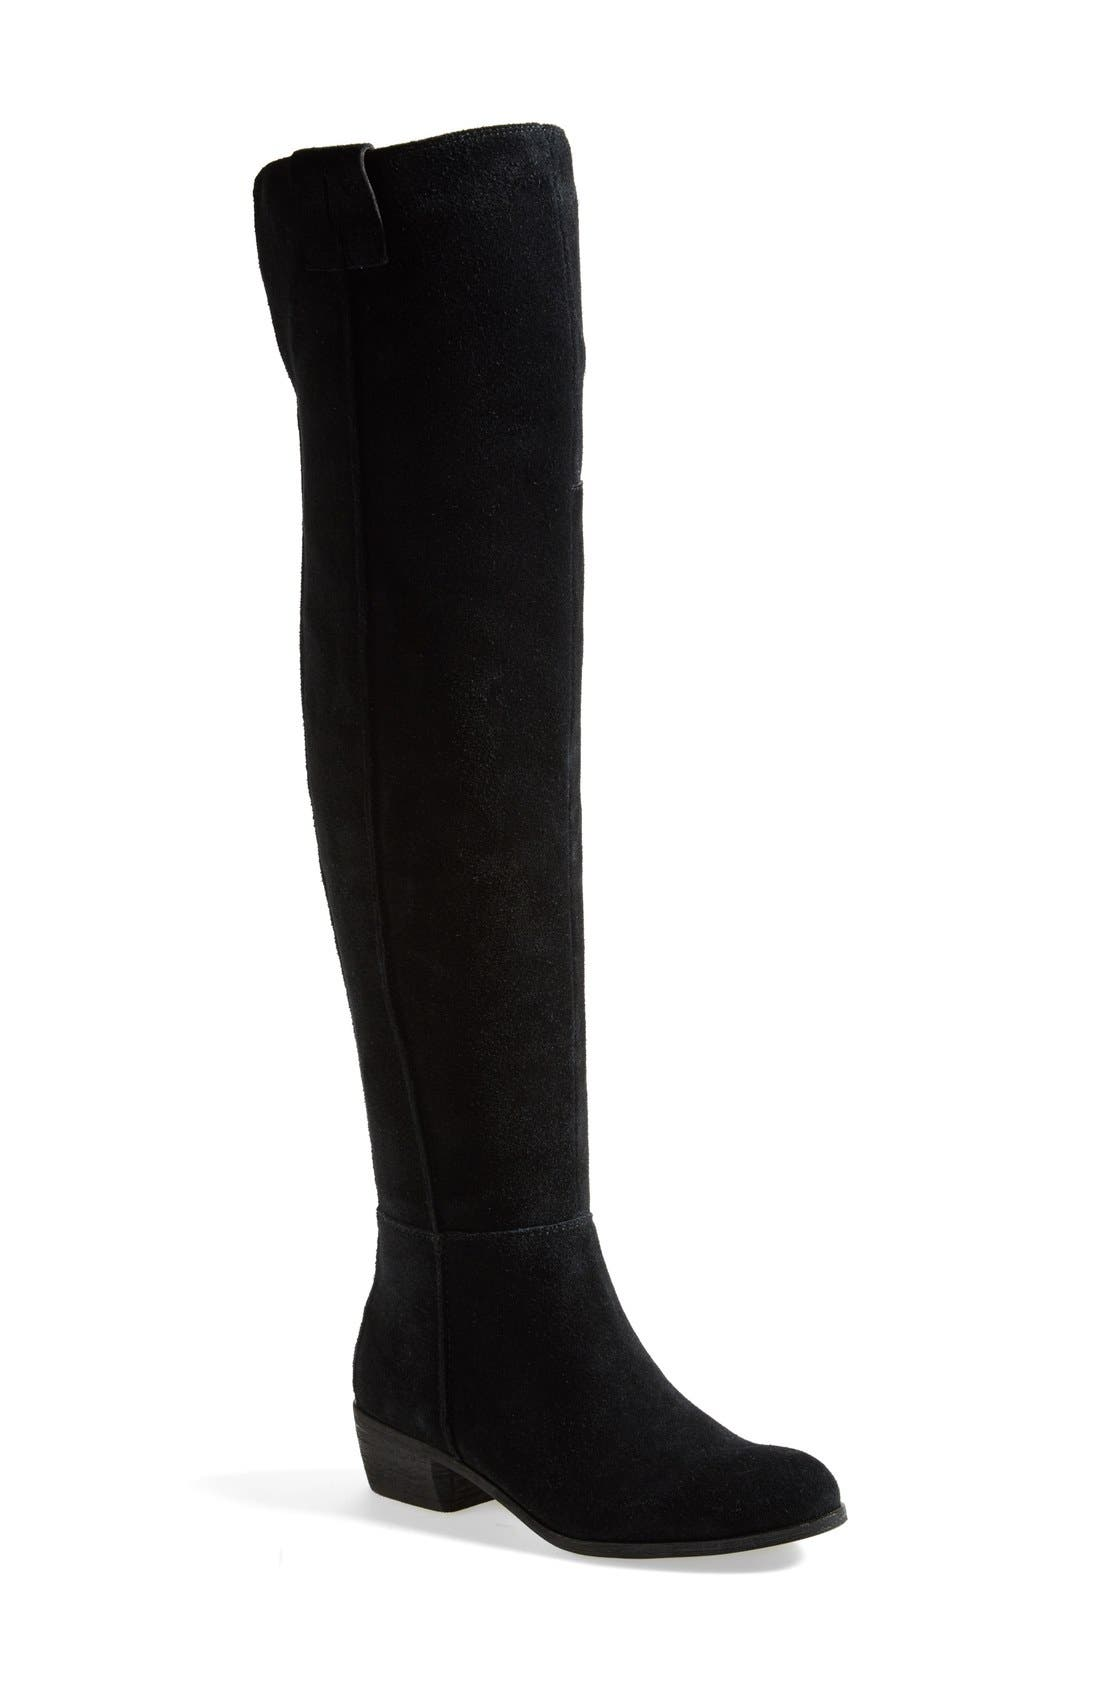 'Johanna' Over the Knee Suede Boot,                             Main thumbnail 1, color,                             001